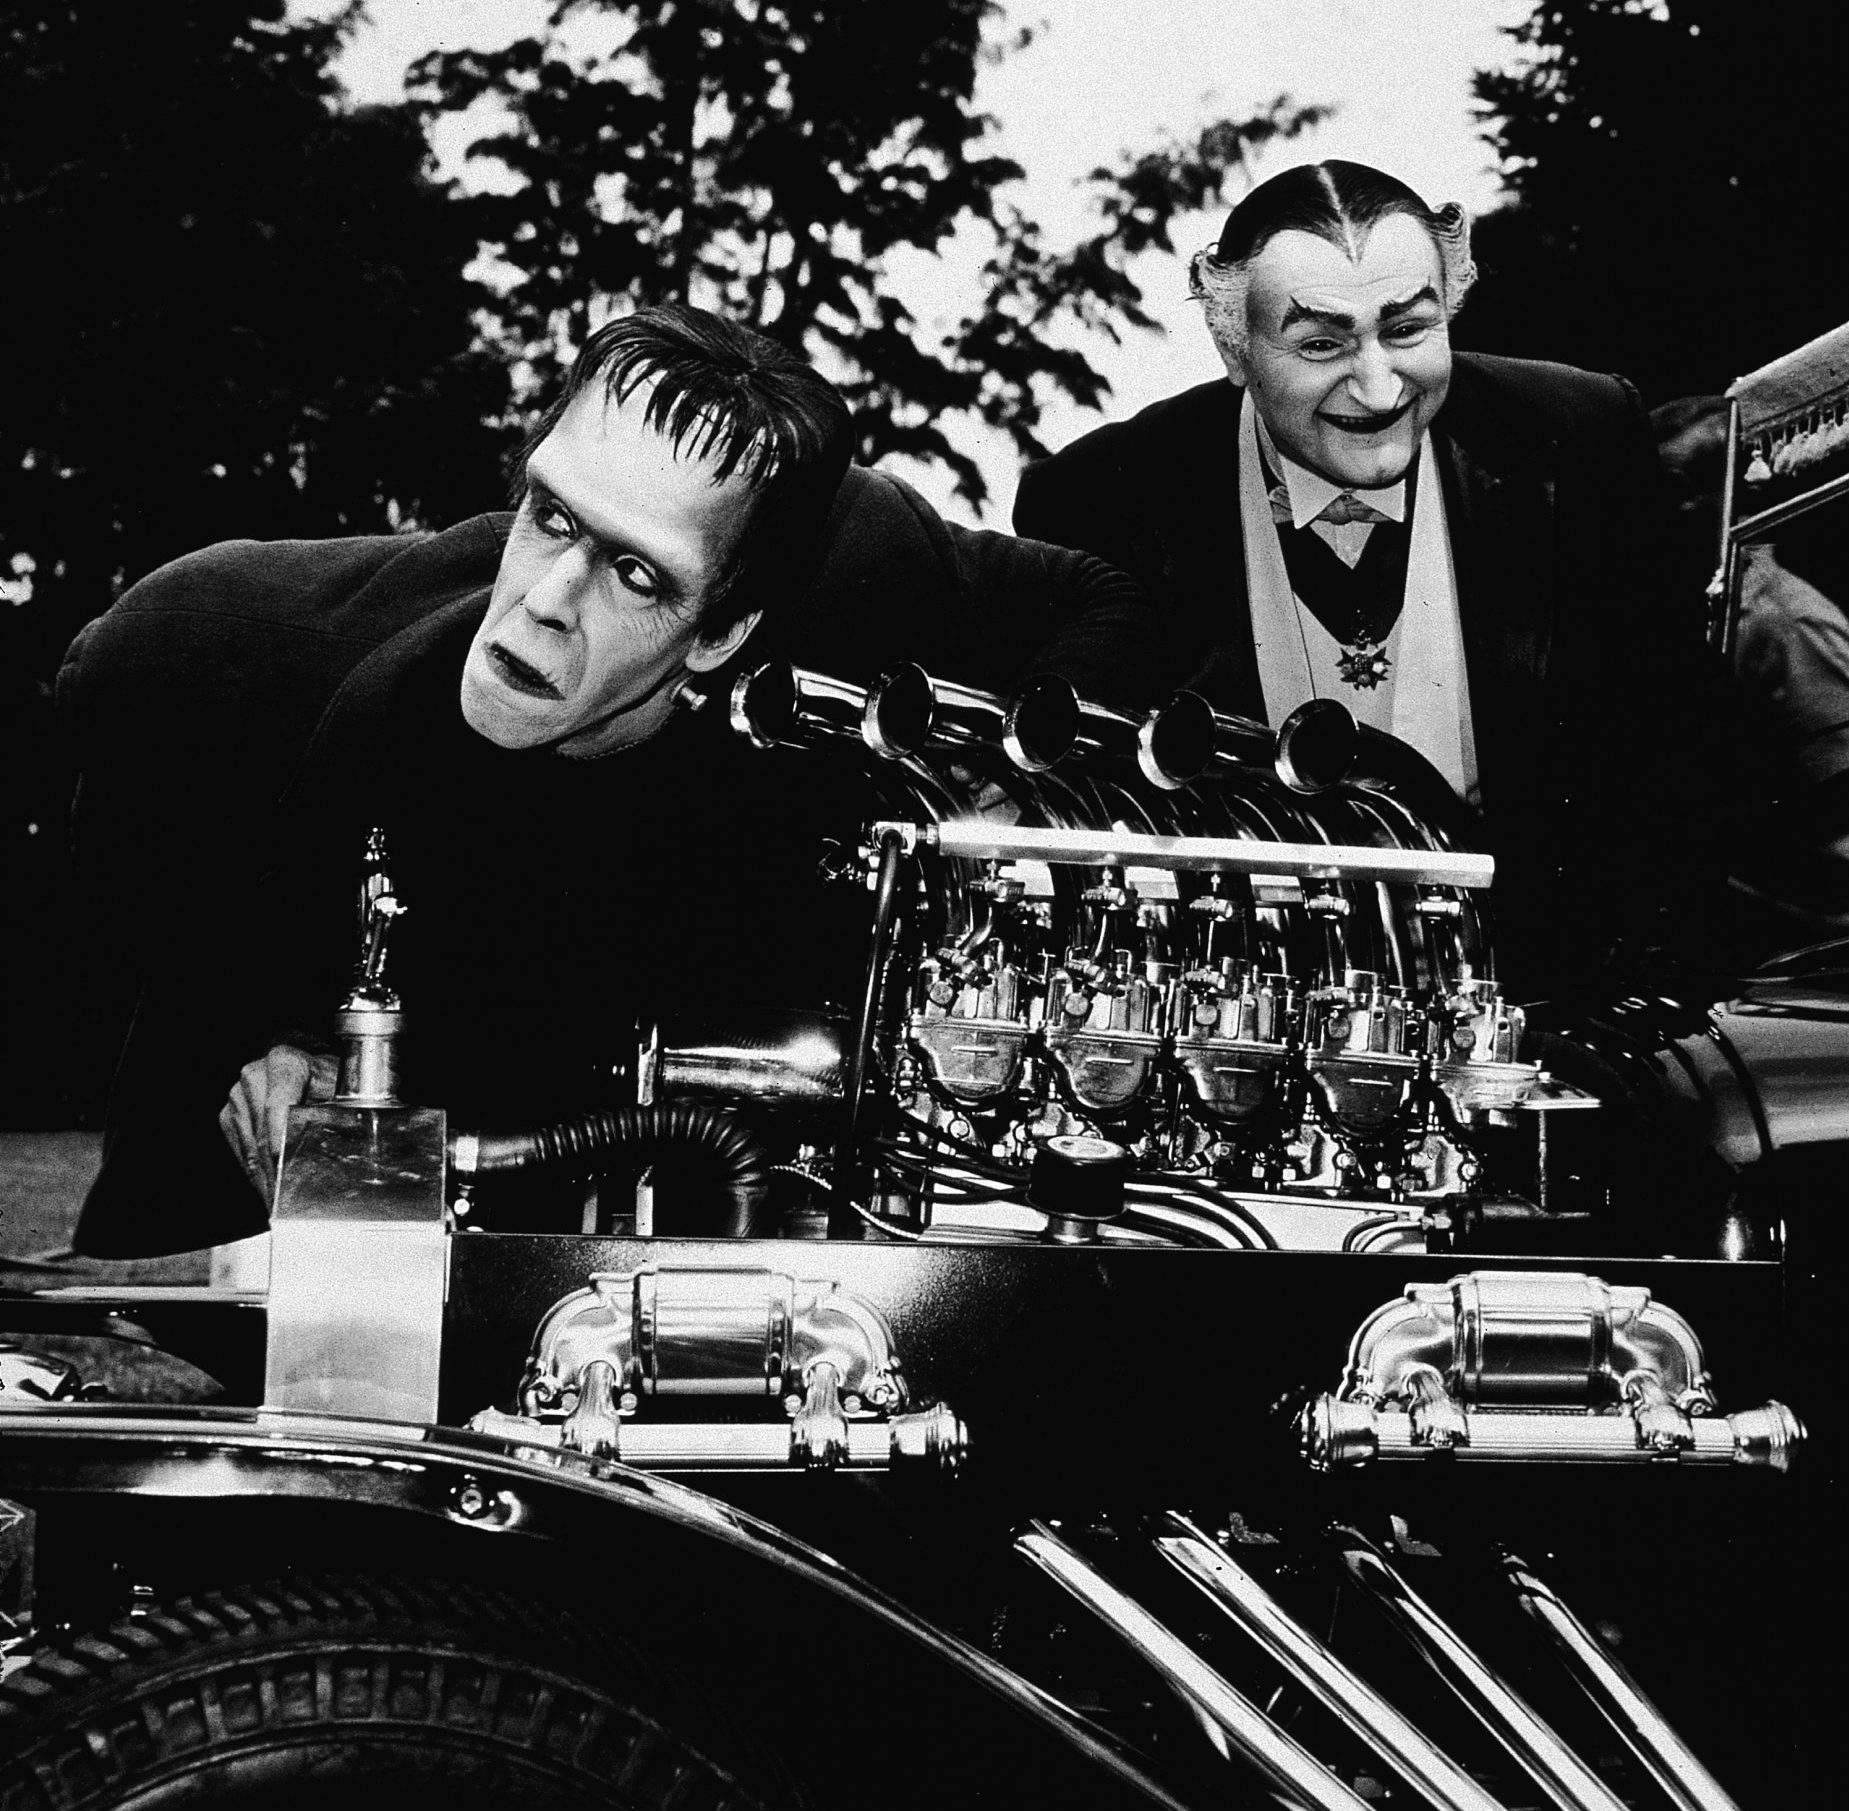 Actors Fred Gwynne (left) and Al Lewis pose with the Munsters Koach, circa 1964. Hulton Archive/Getty Images